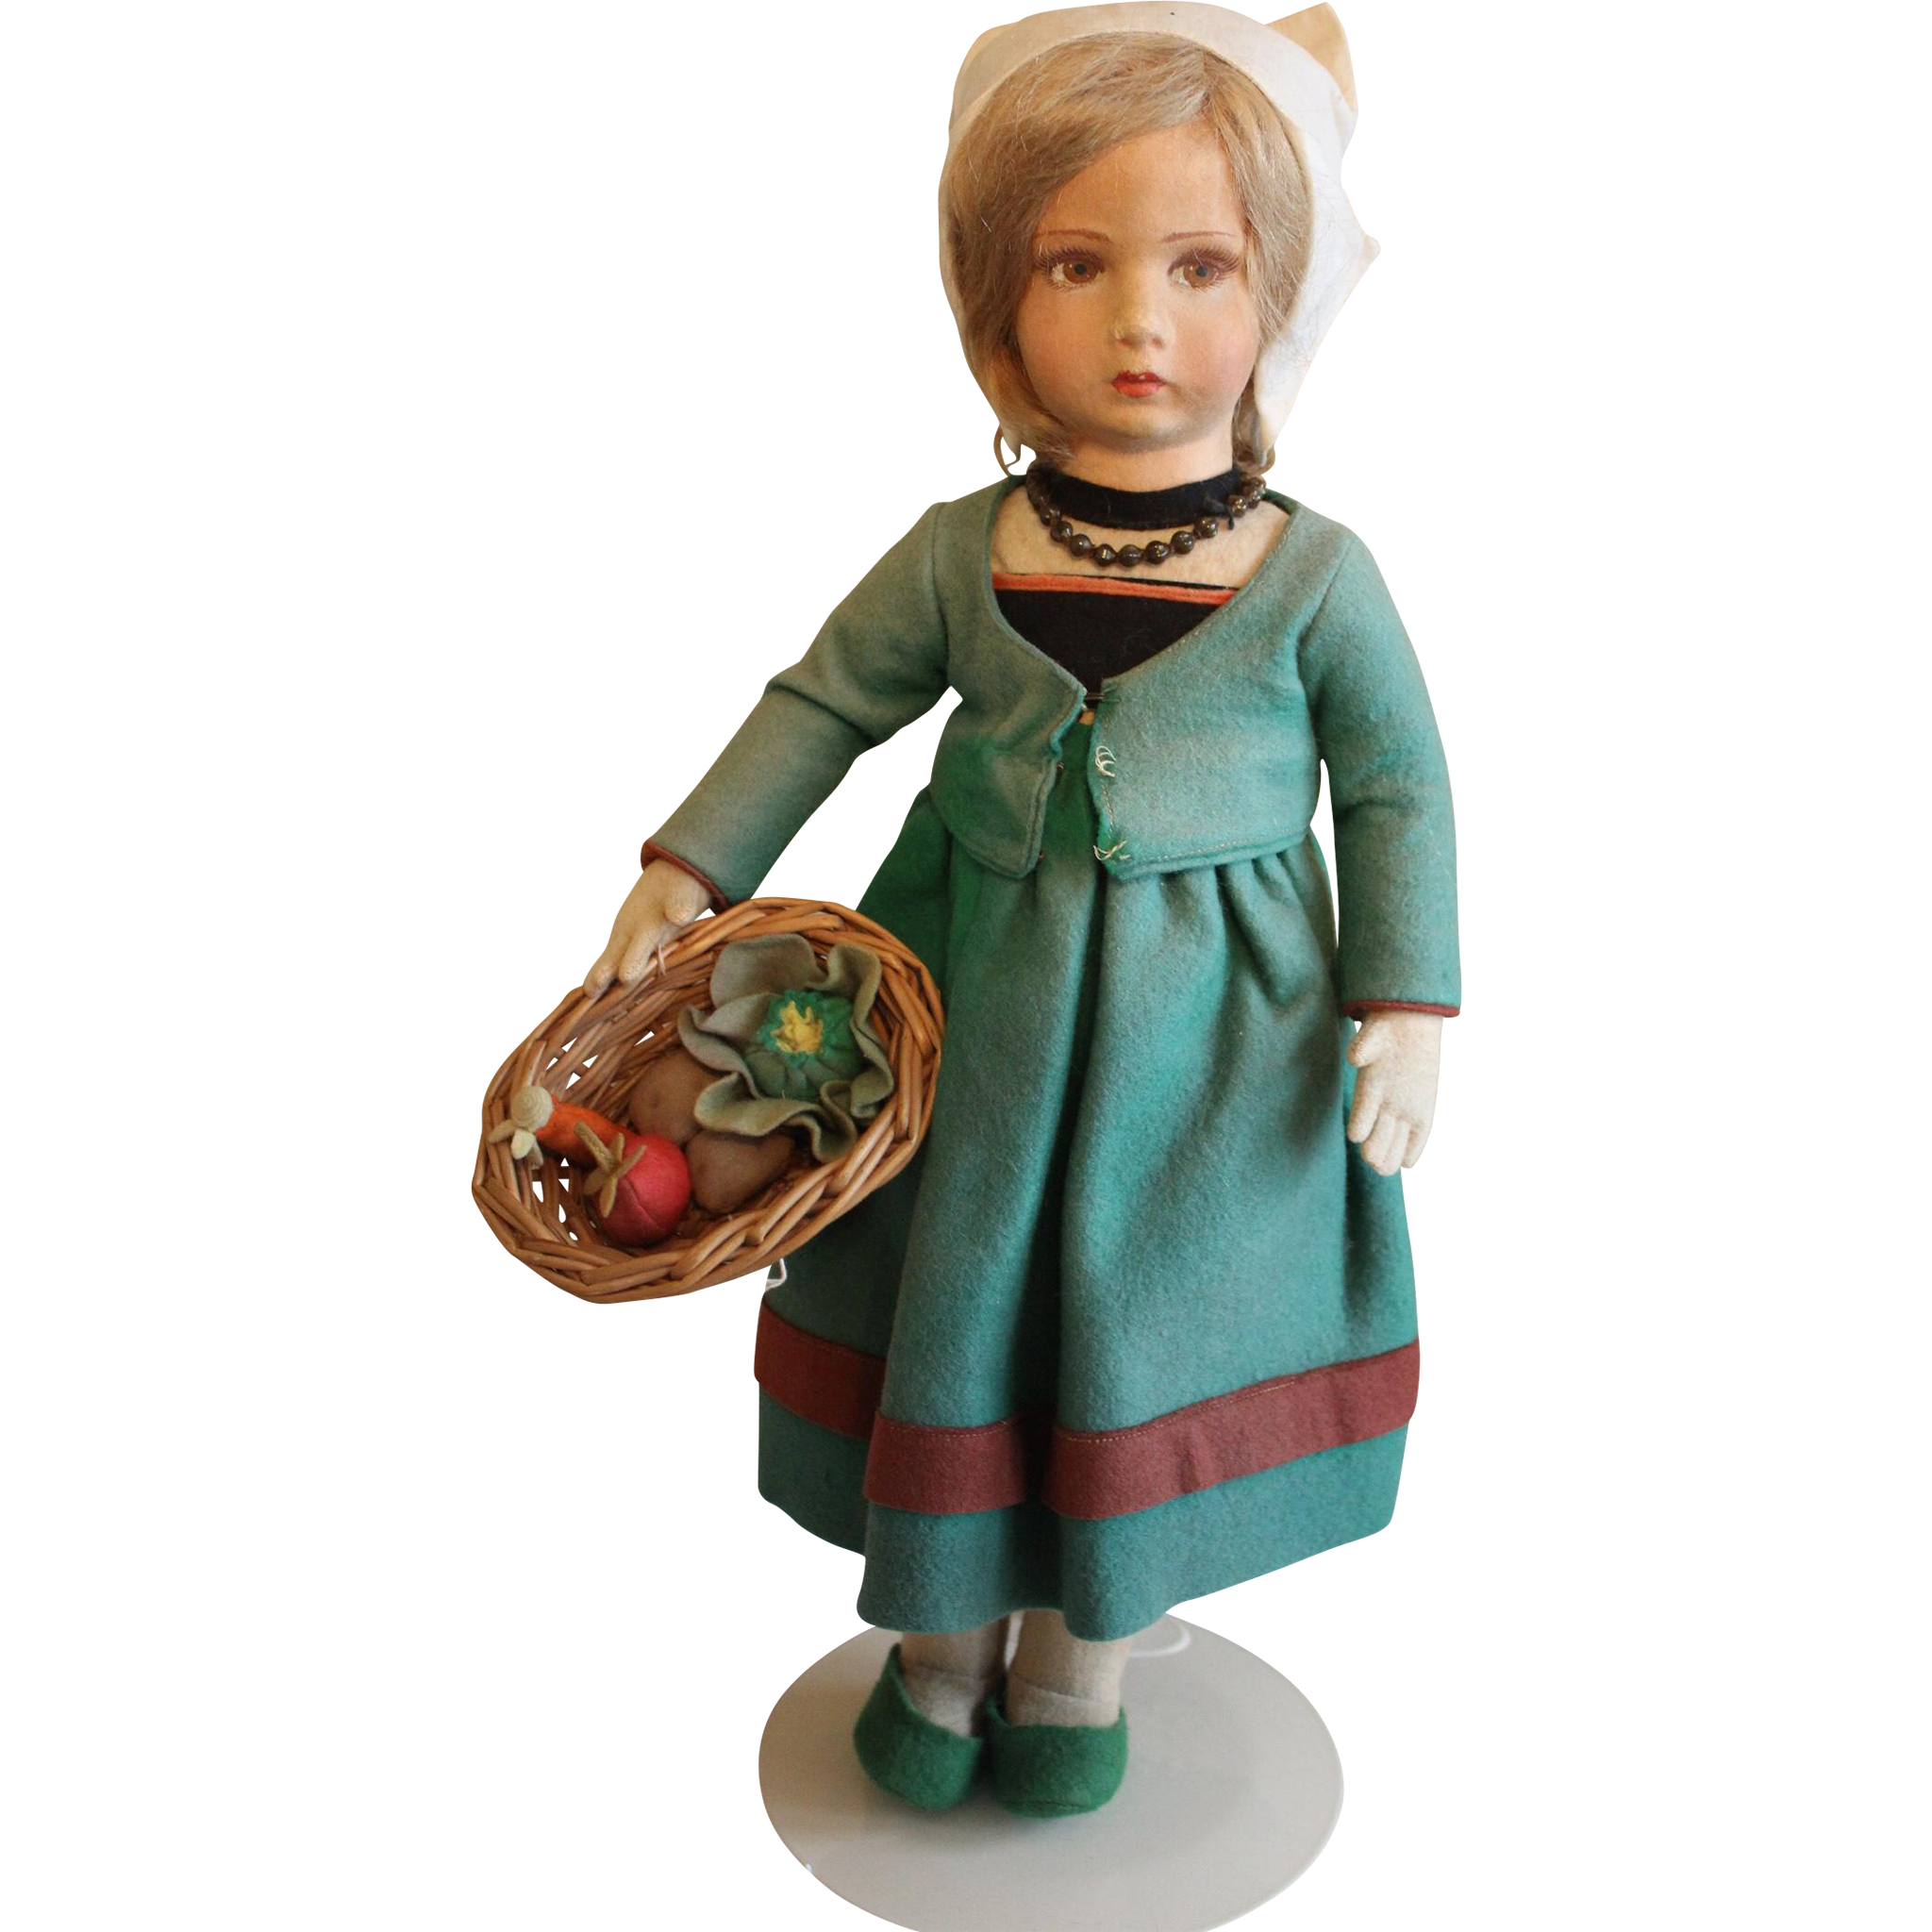 "Wonderful 17"" Felt Lenci Doll"